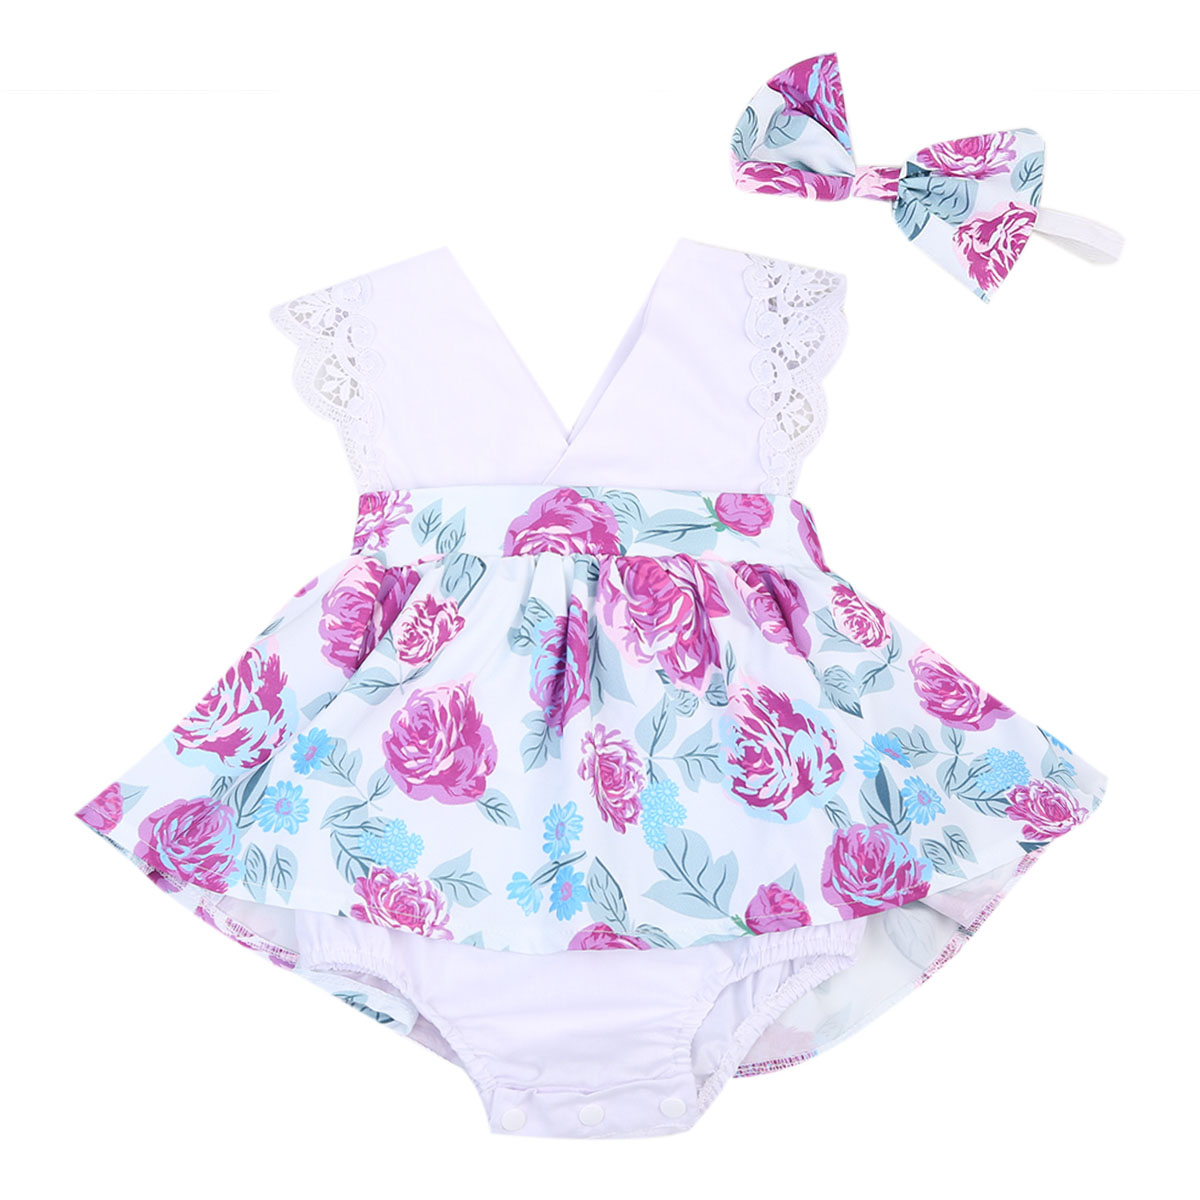 Cute 2017 Infant Baby Girl Clothes Sleeveless Lace Romper Headband 2Pcs Outfits Summer Cotton Floral Baby Sunsuits